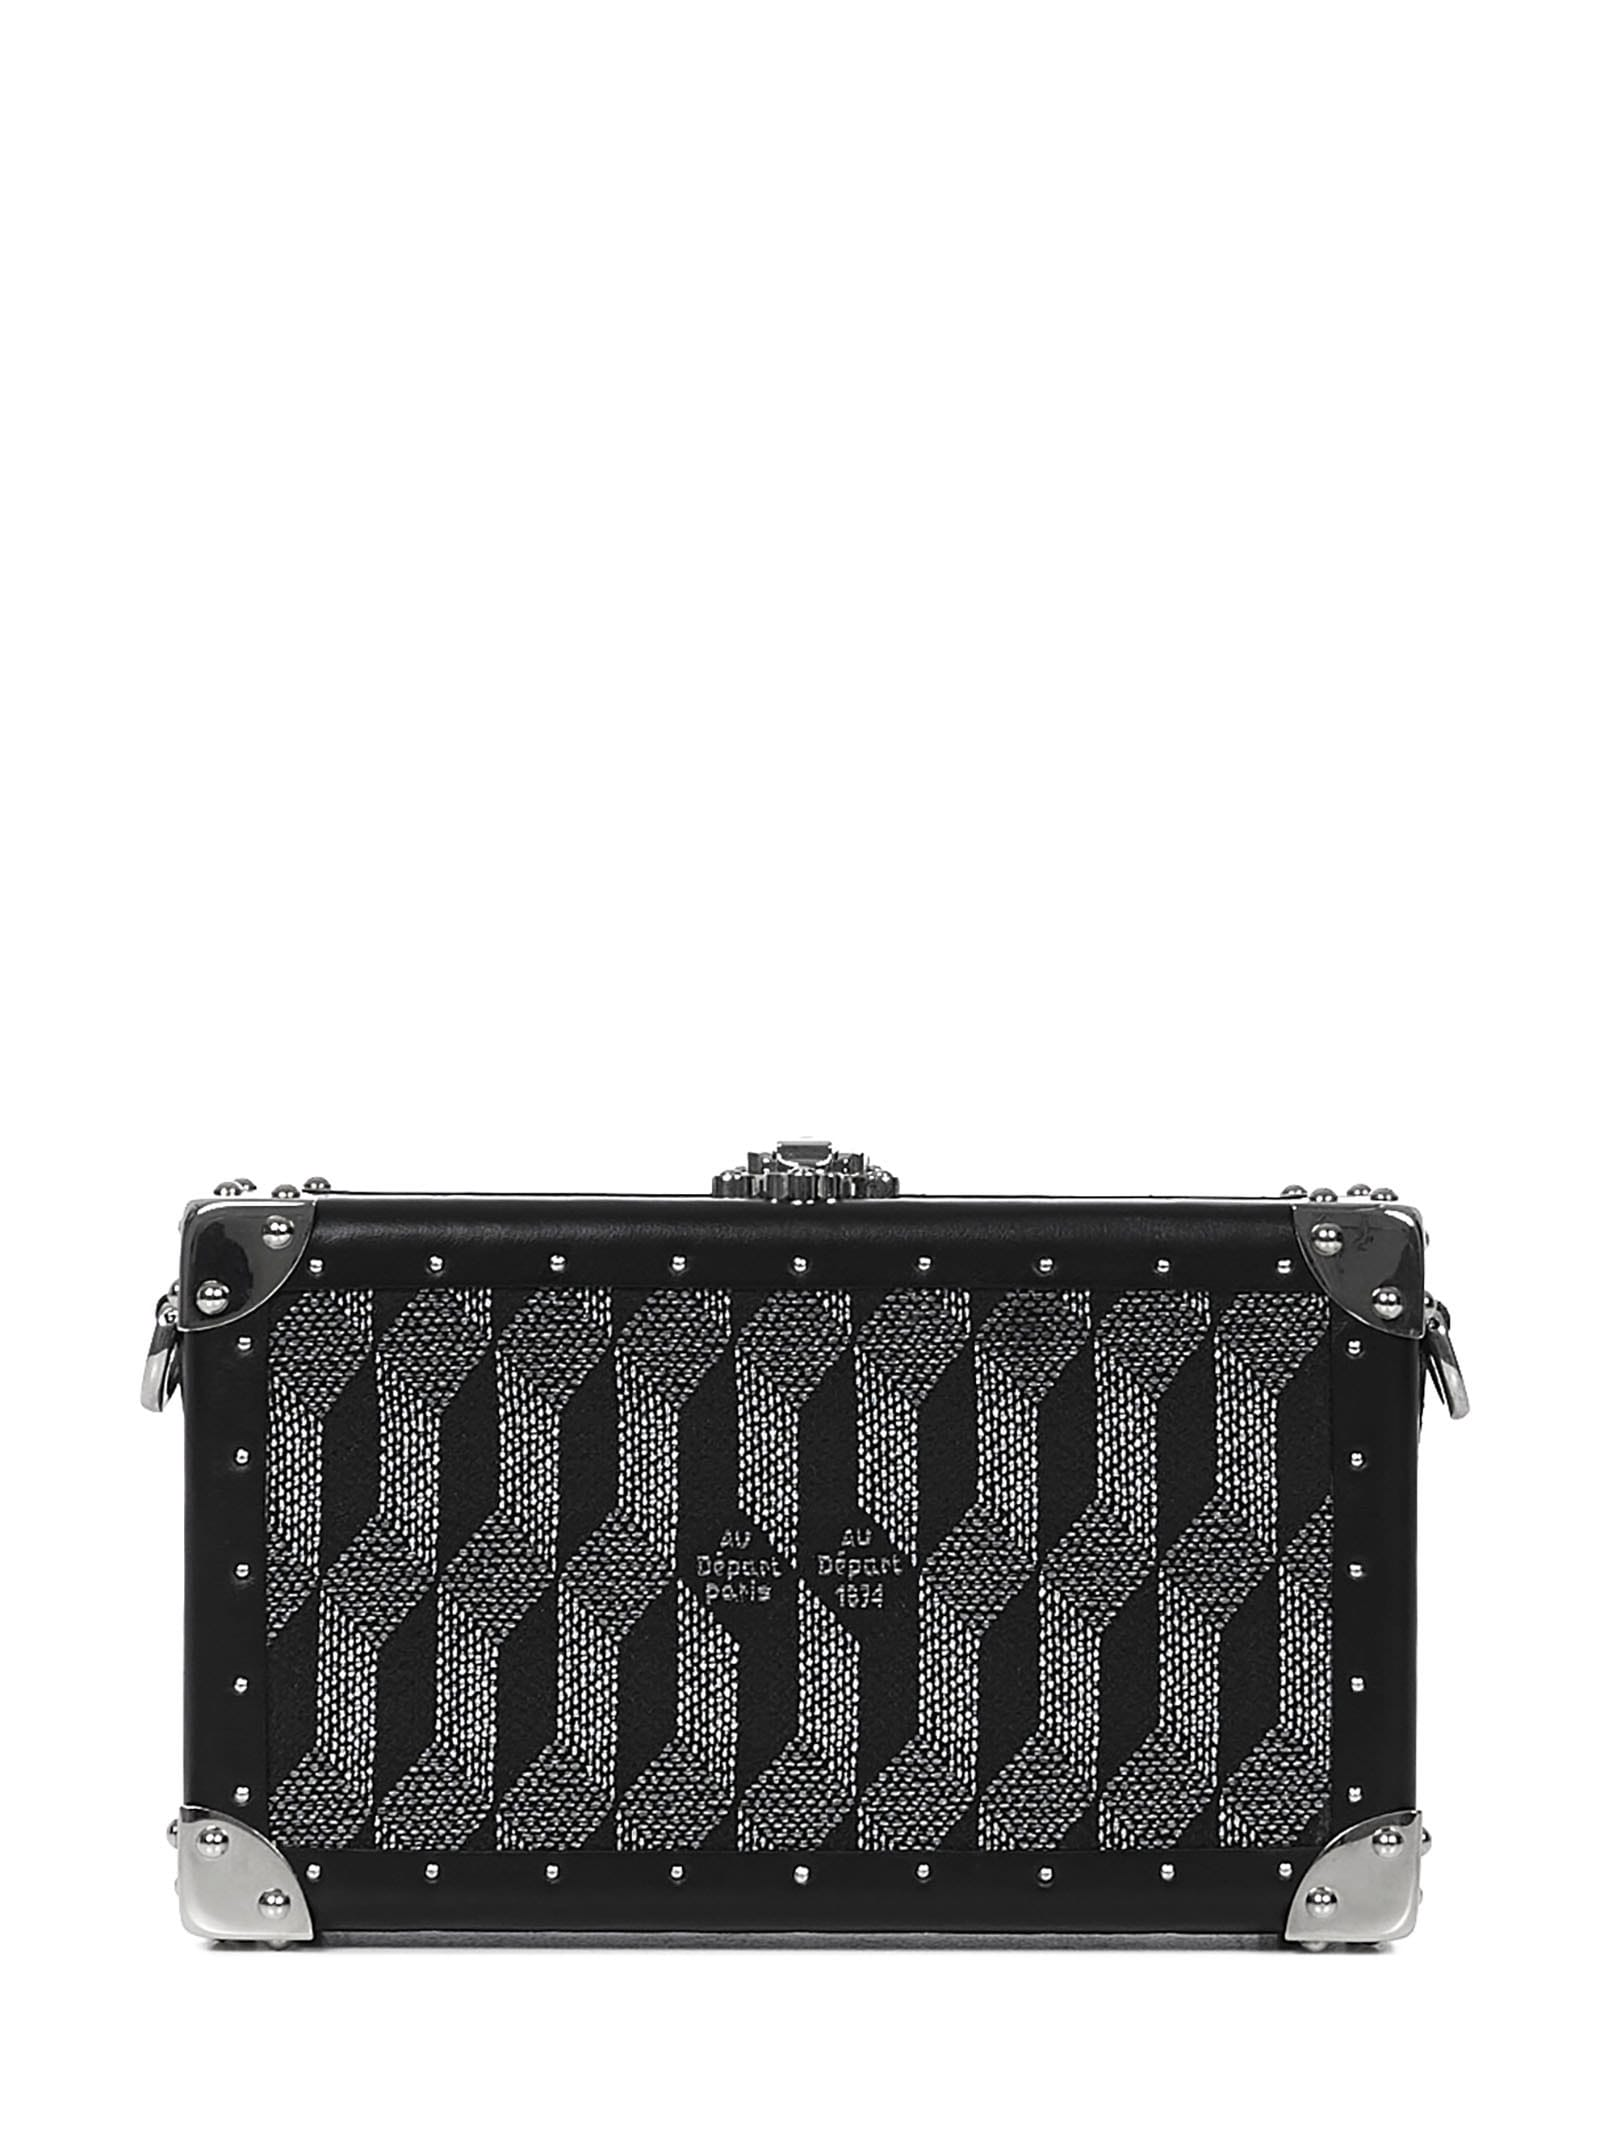 Au Depart AU DEPART PARIS NANO TRUNK MONOGRAM CLUTCH